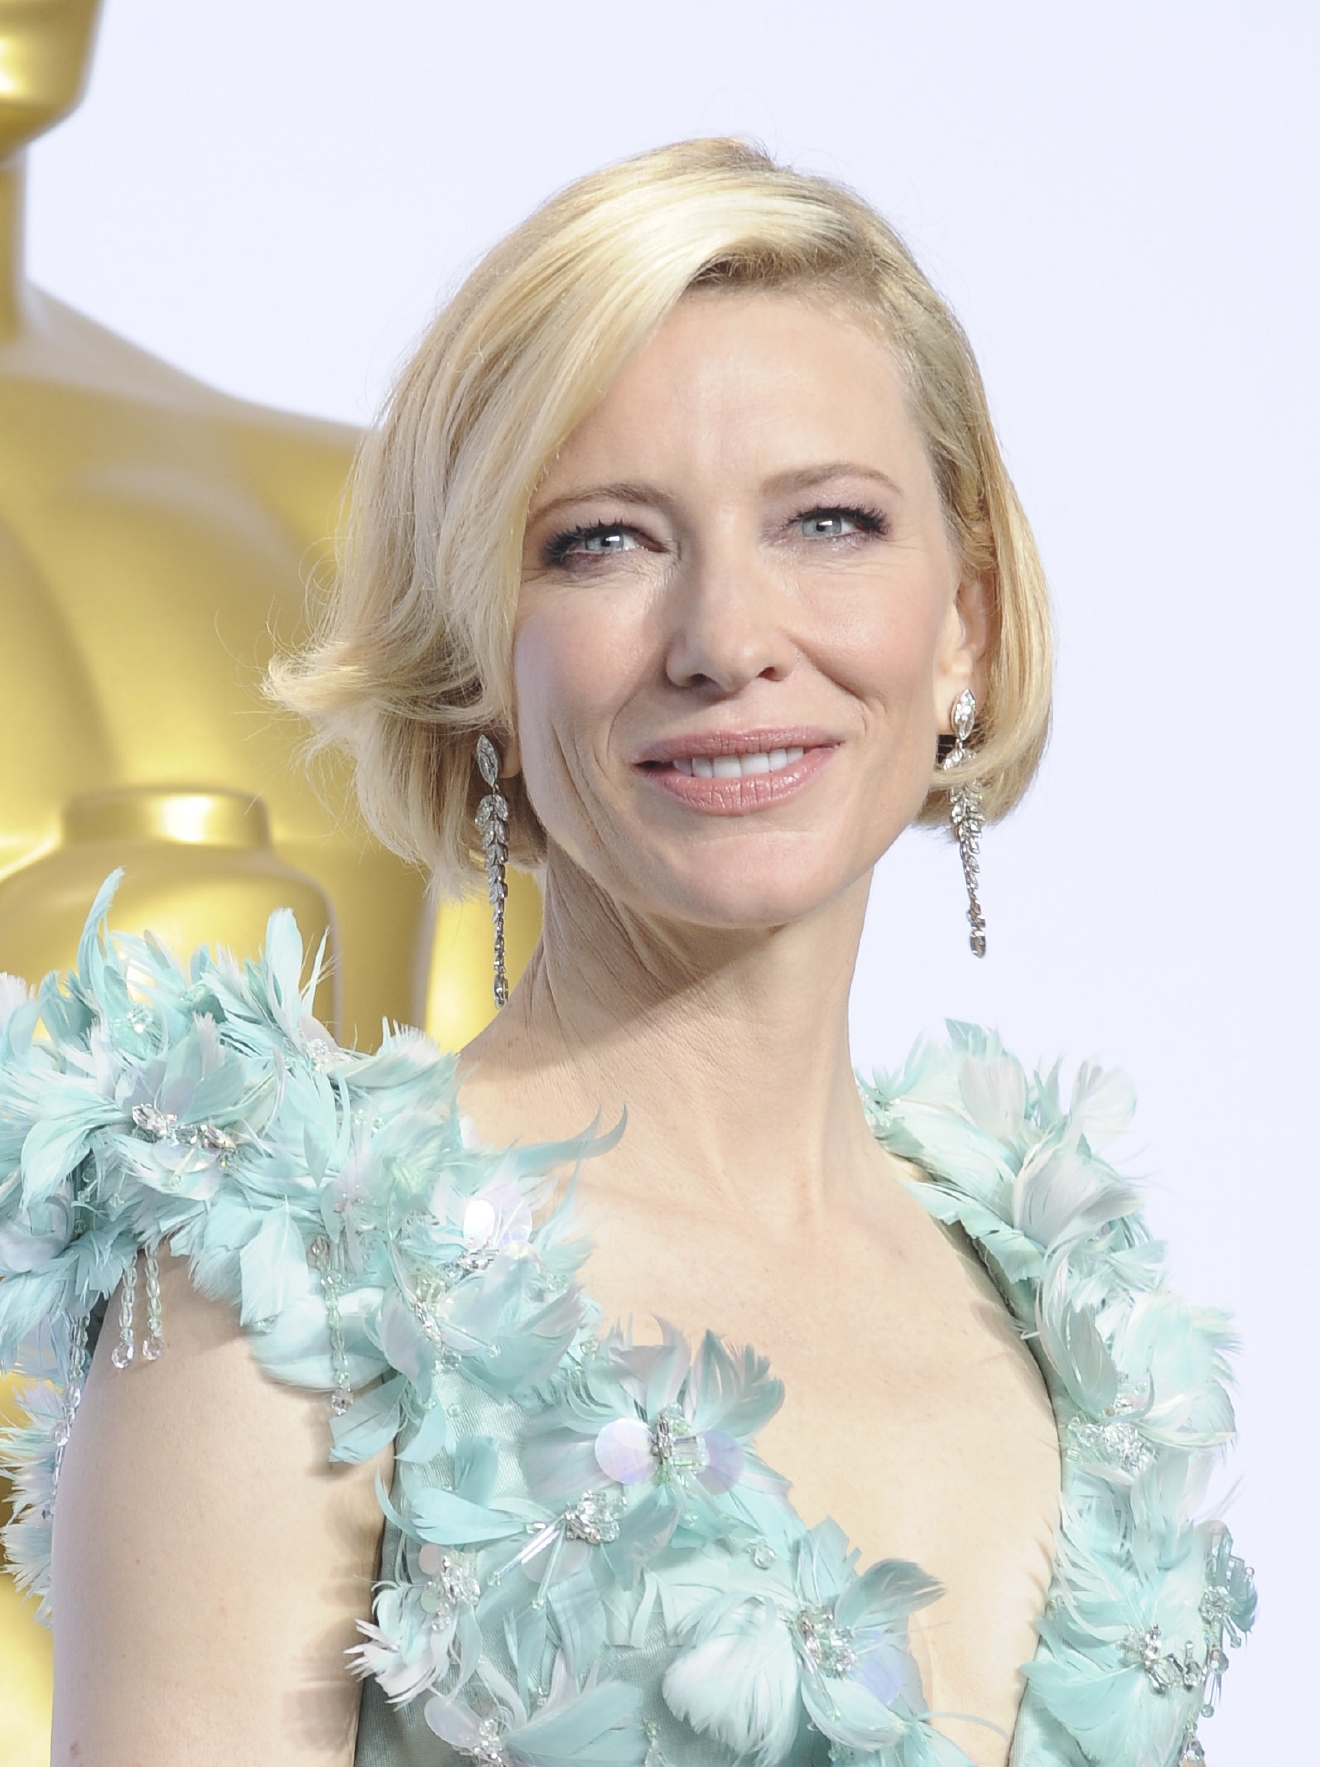 Cate Blanchett at the 88th Annual Academy Awards Pressroom. (Apega/WENN.com)